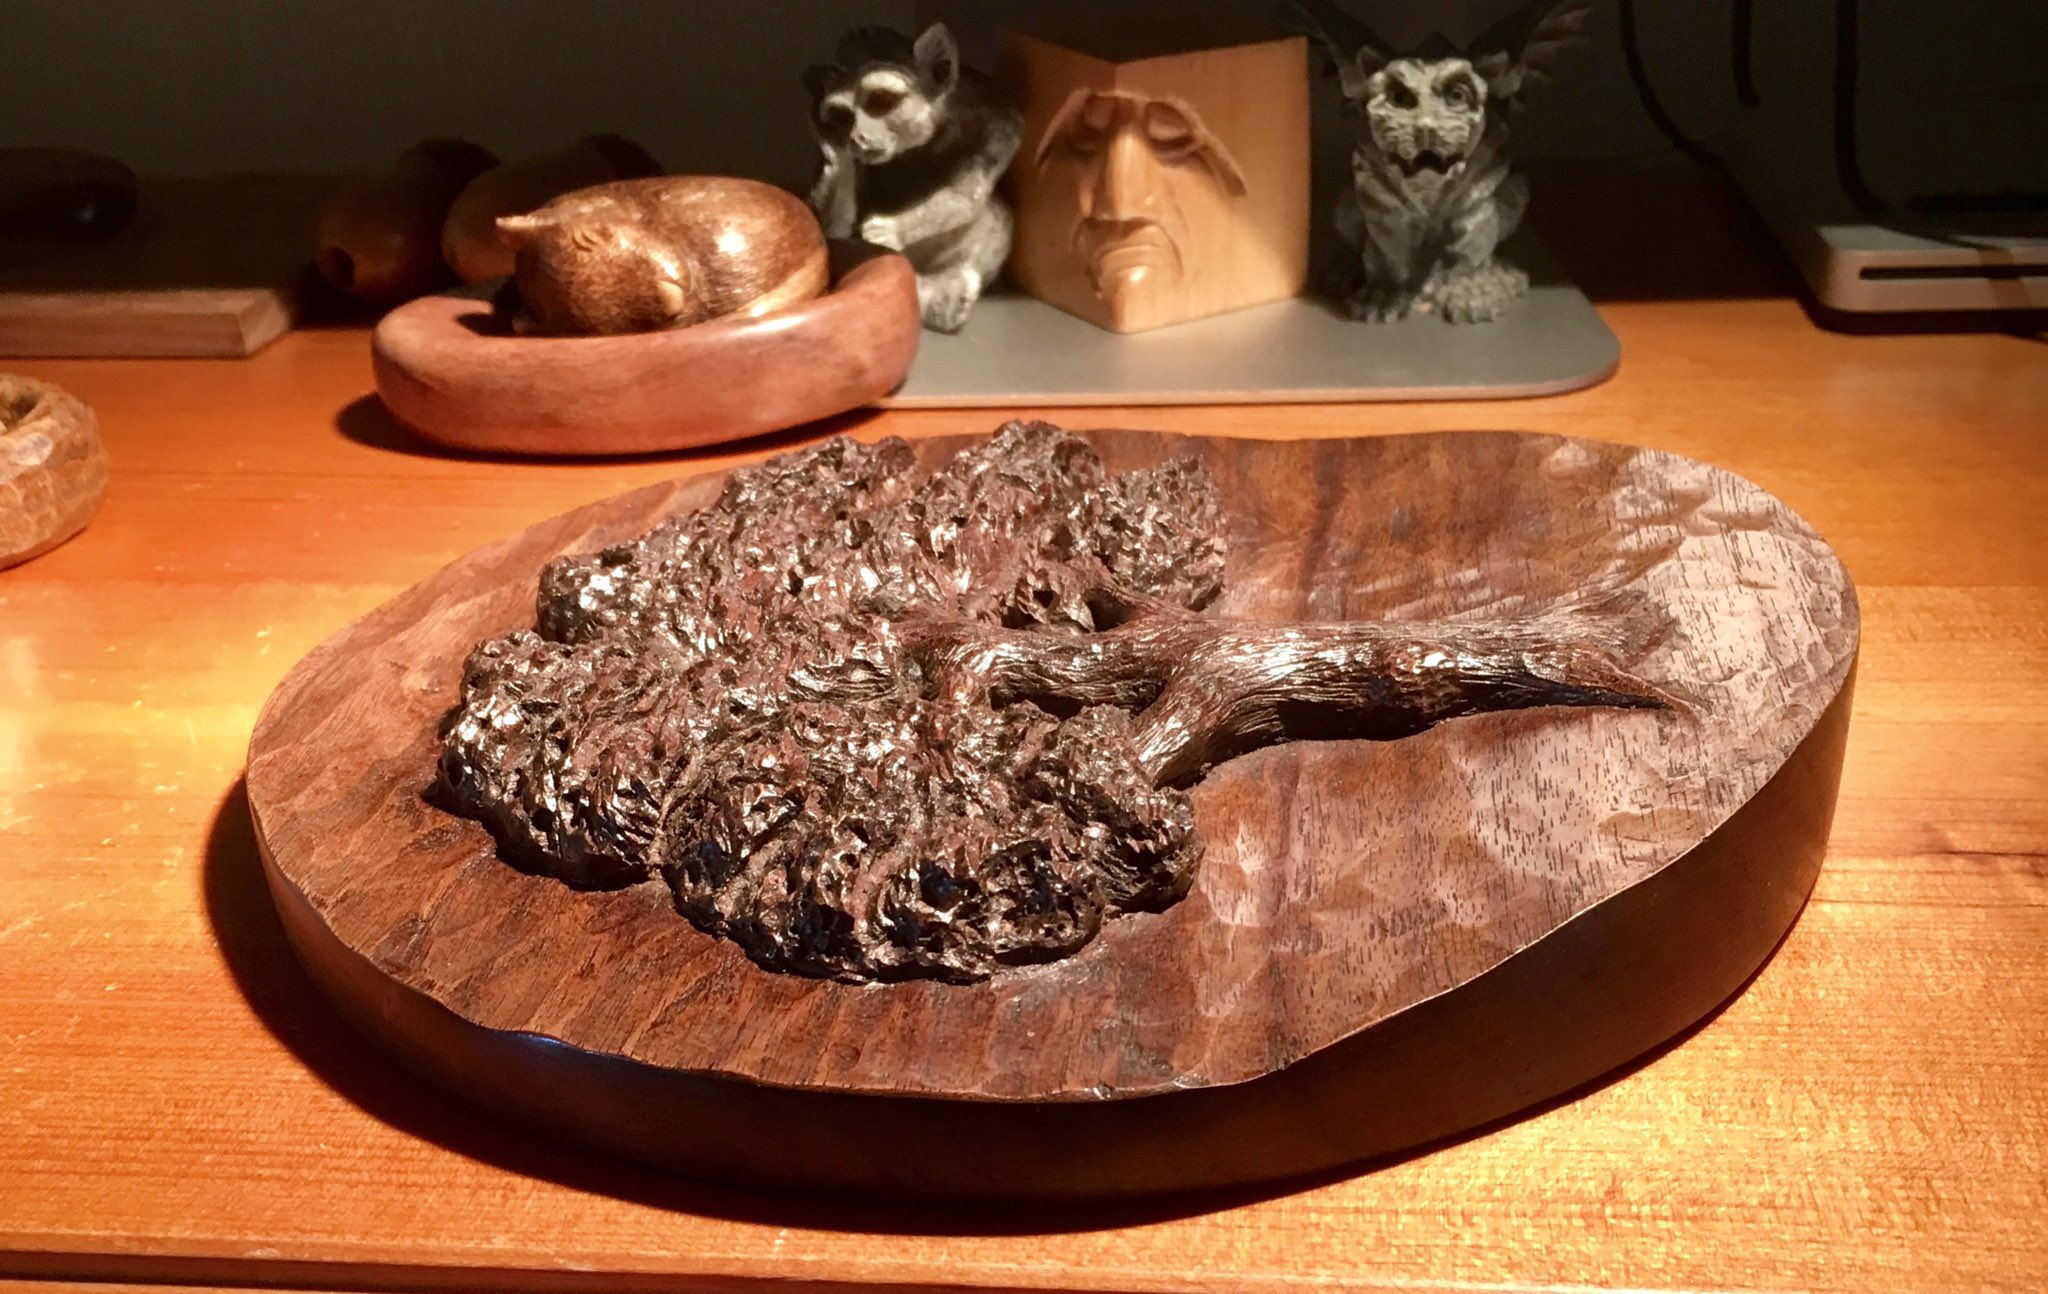 Walnut tree carved in walnut just because https://t.co/fdAwTdGnh2